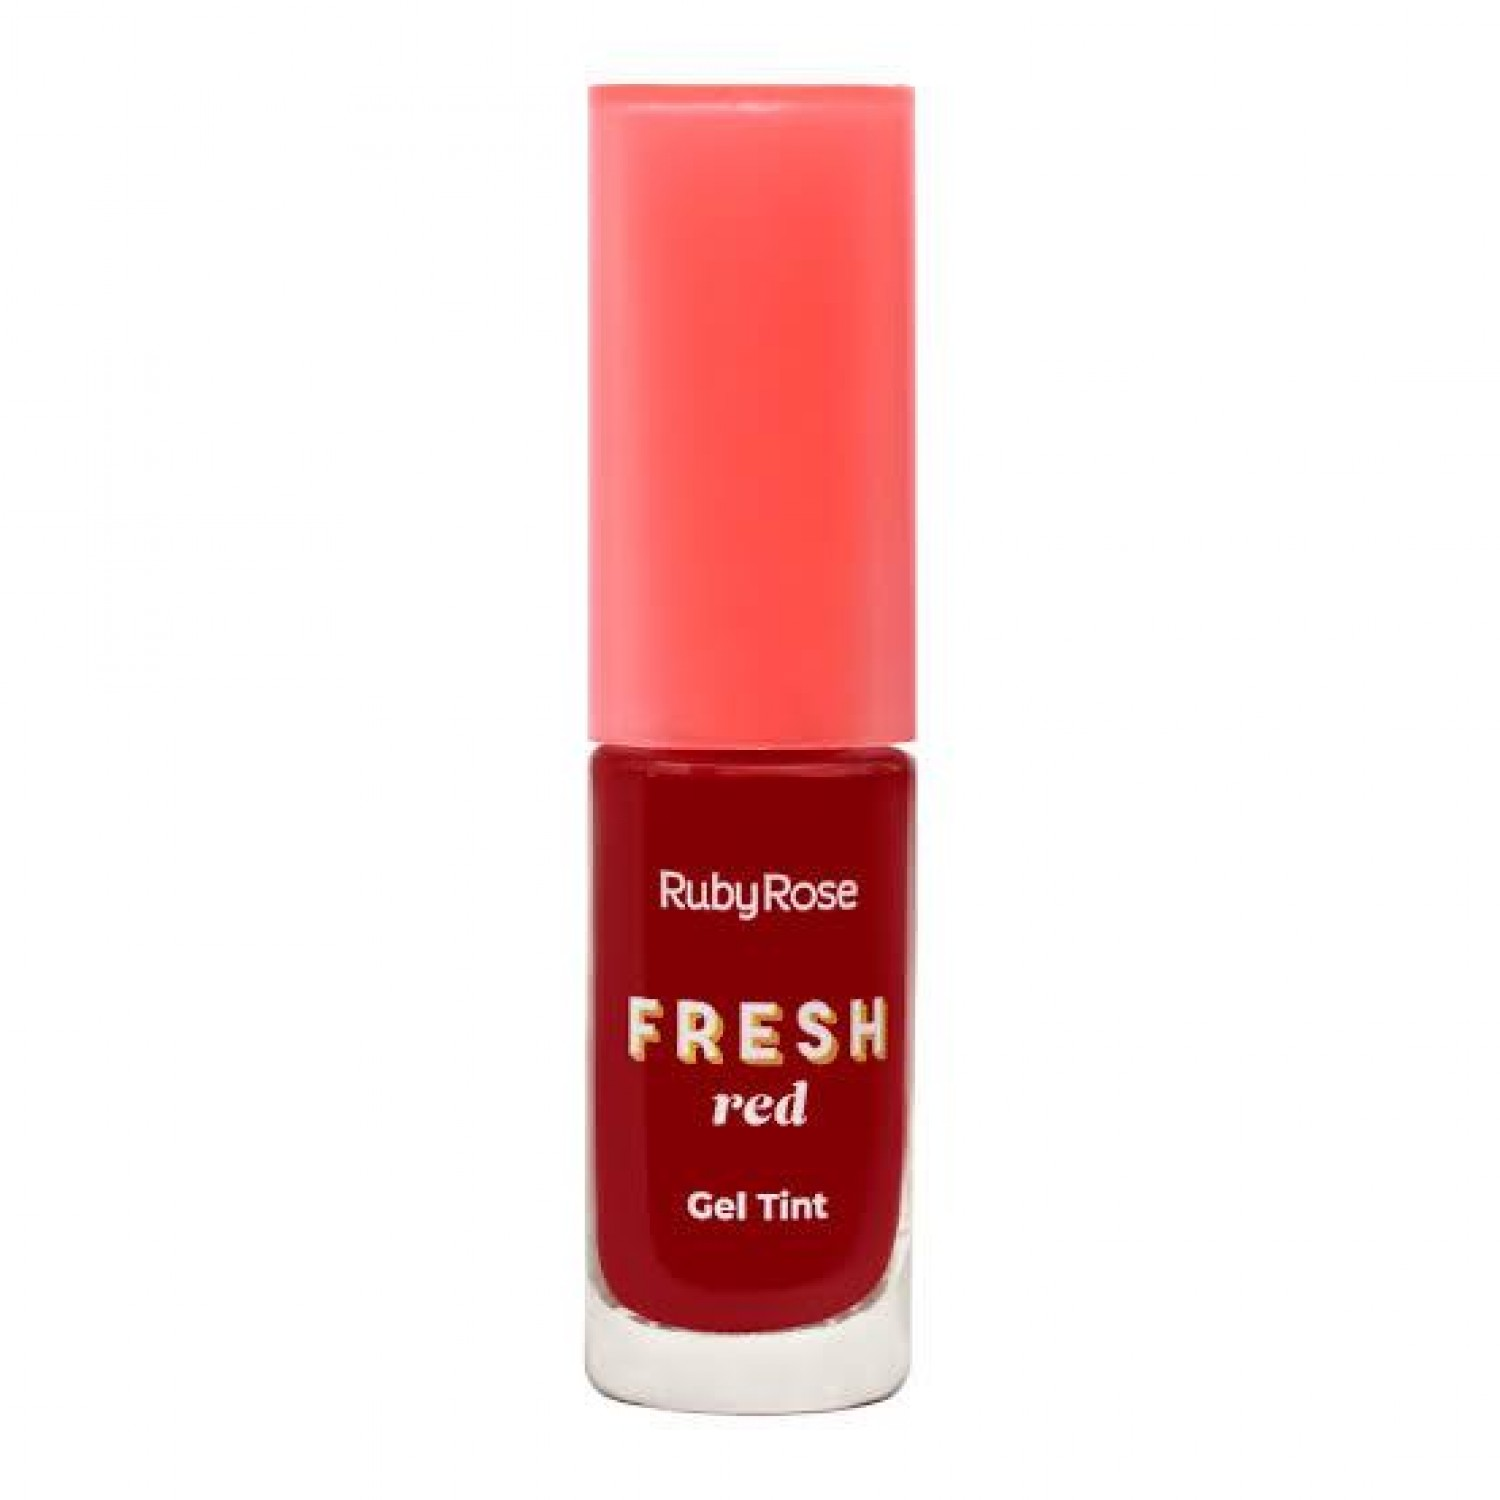 Gel Tint Fresh Red - Ruby Rose